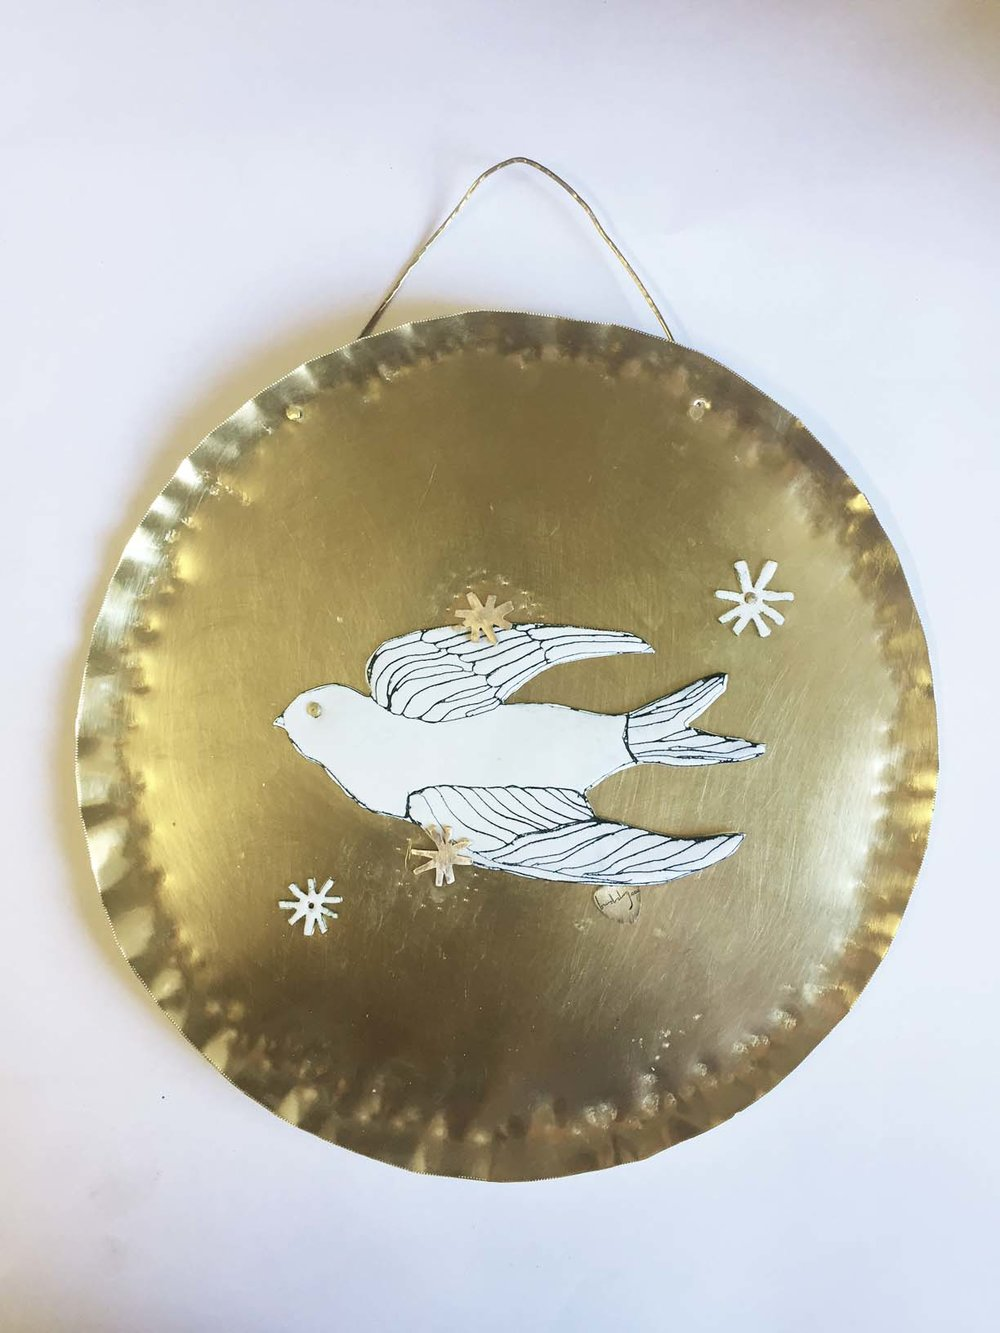 Riveted the bird with hand -cut metal stars, it took a lot of time placing the stars!